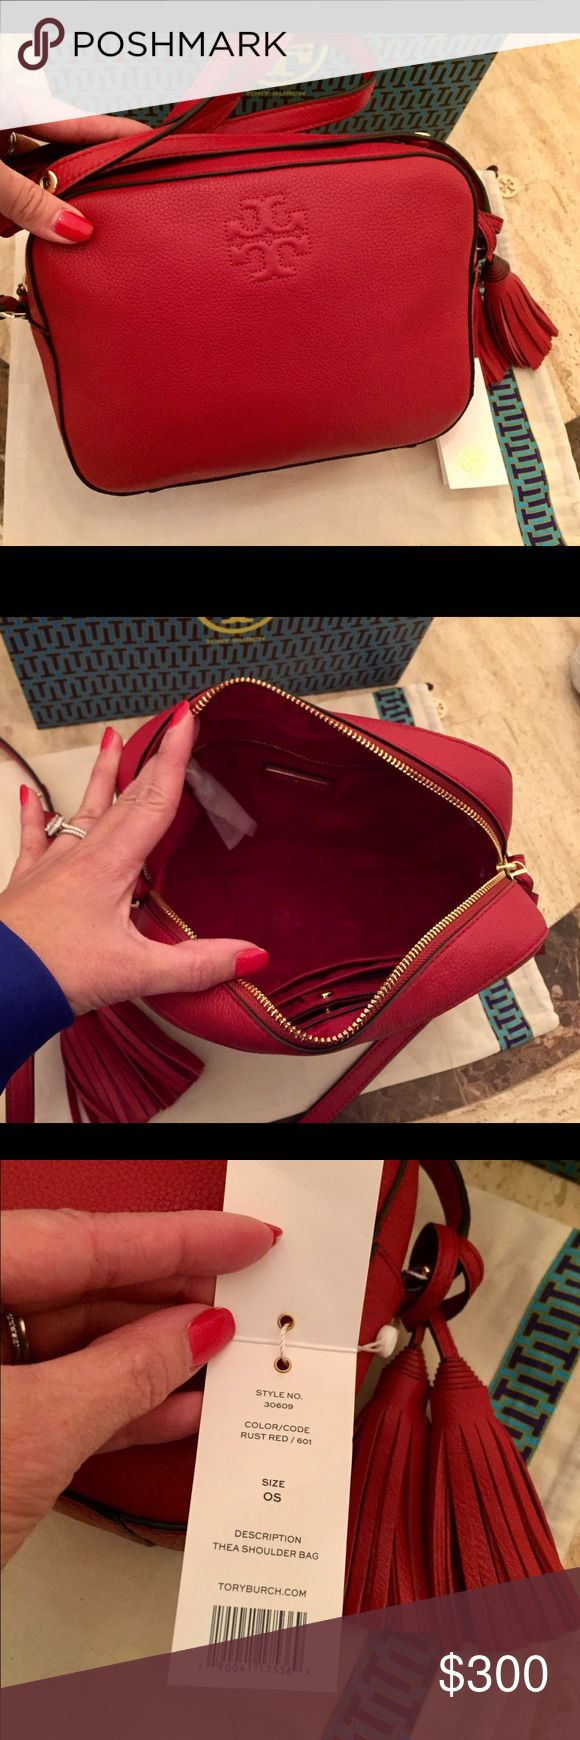 """New! Tory Burch Thea Shoulder Bag Brand new w/ tags! Rust red color. Last photo in black for sizing reference only. Comes w/shopping & dust bag.  Holds mini wallet, camera, notebook, an agenda, sunglasses, iPhone 6 Plus & fragrance rollerball Pebbled leather Top zipper closure Adjustable cross-body strap w/ 23.31"""" (58.5 cm) drop 1 interior zipper pocket, 2 open pockets Height: 6.97""""  Length: 9.36""""  Depth: 2.79""""   *This is the Shoulder Bag NOT the mini, lots of room. Online-Neiman sells it…"""